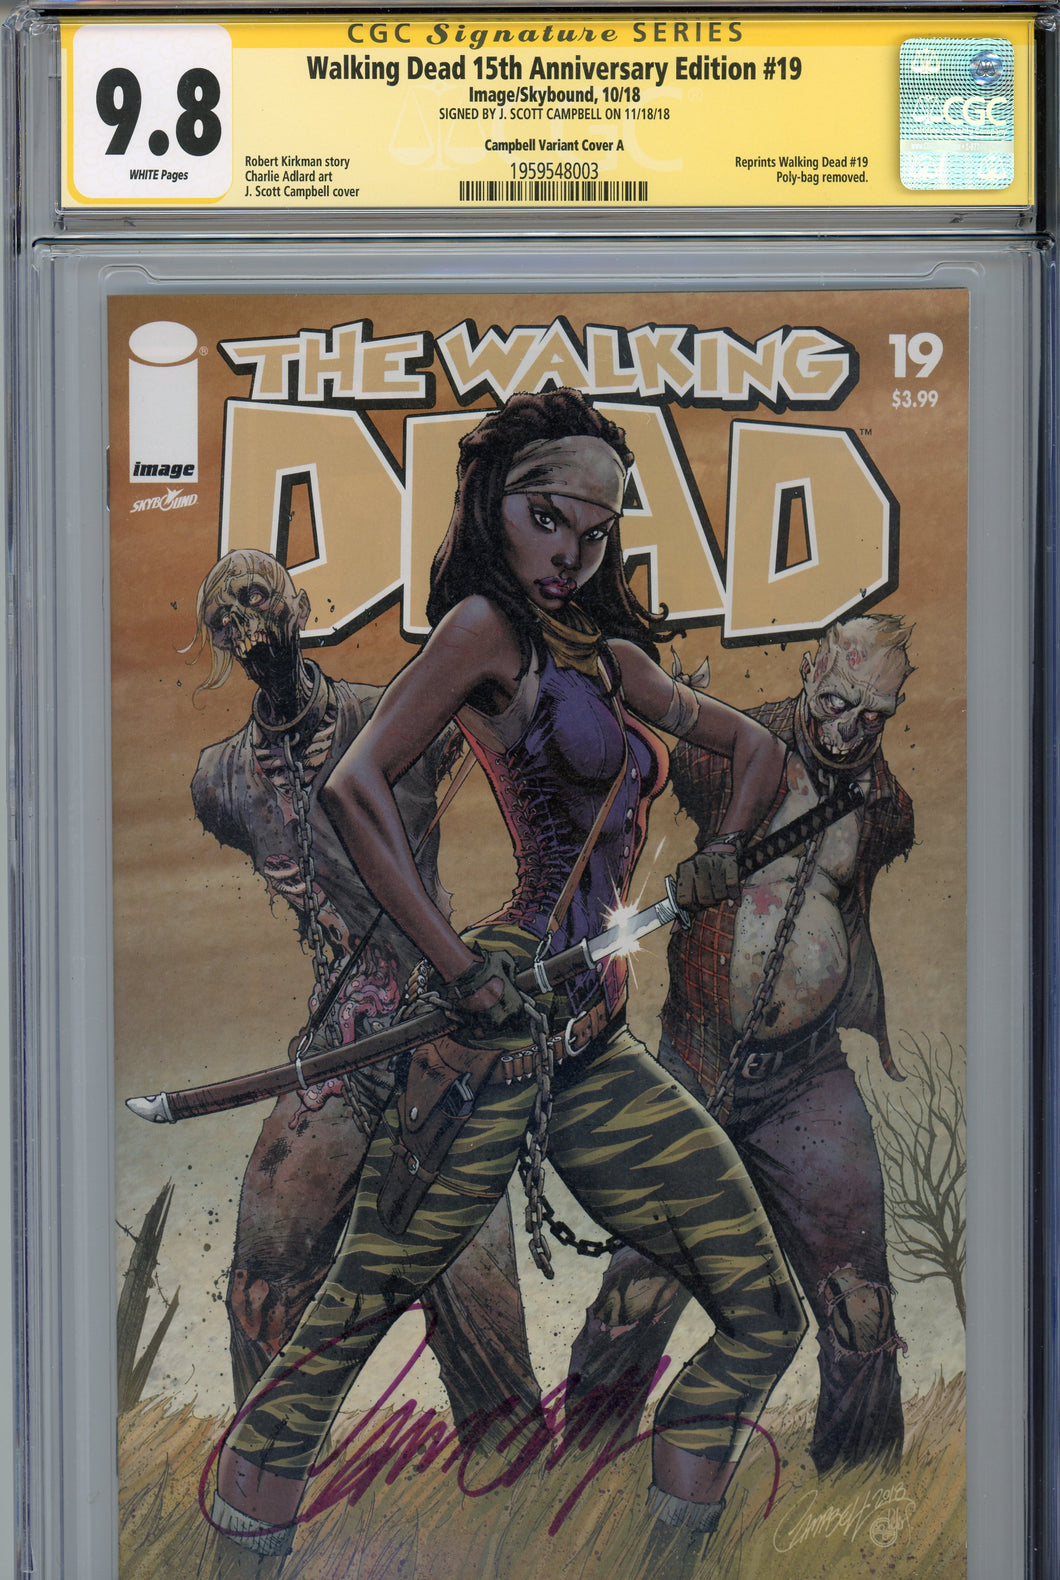 Walking Dead 15th Anniversary Edition #19 CGC 9.8 SS Signed Campbell